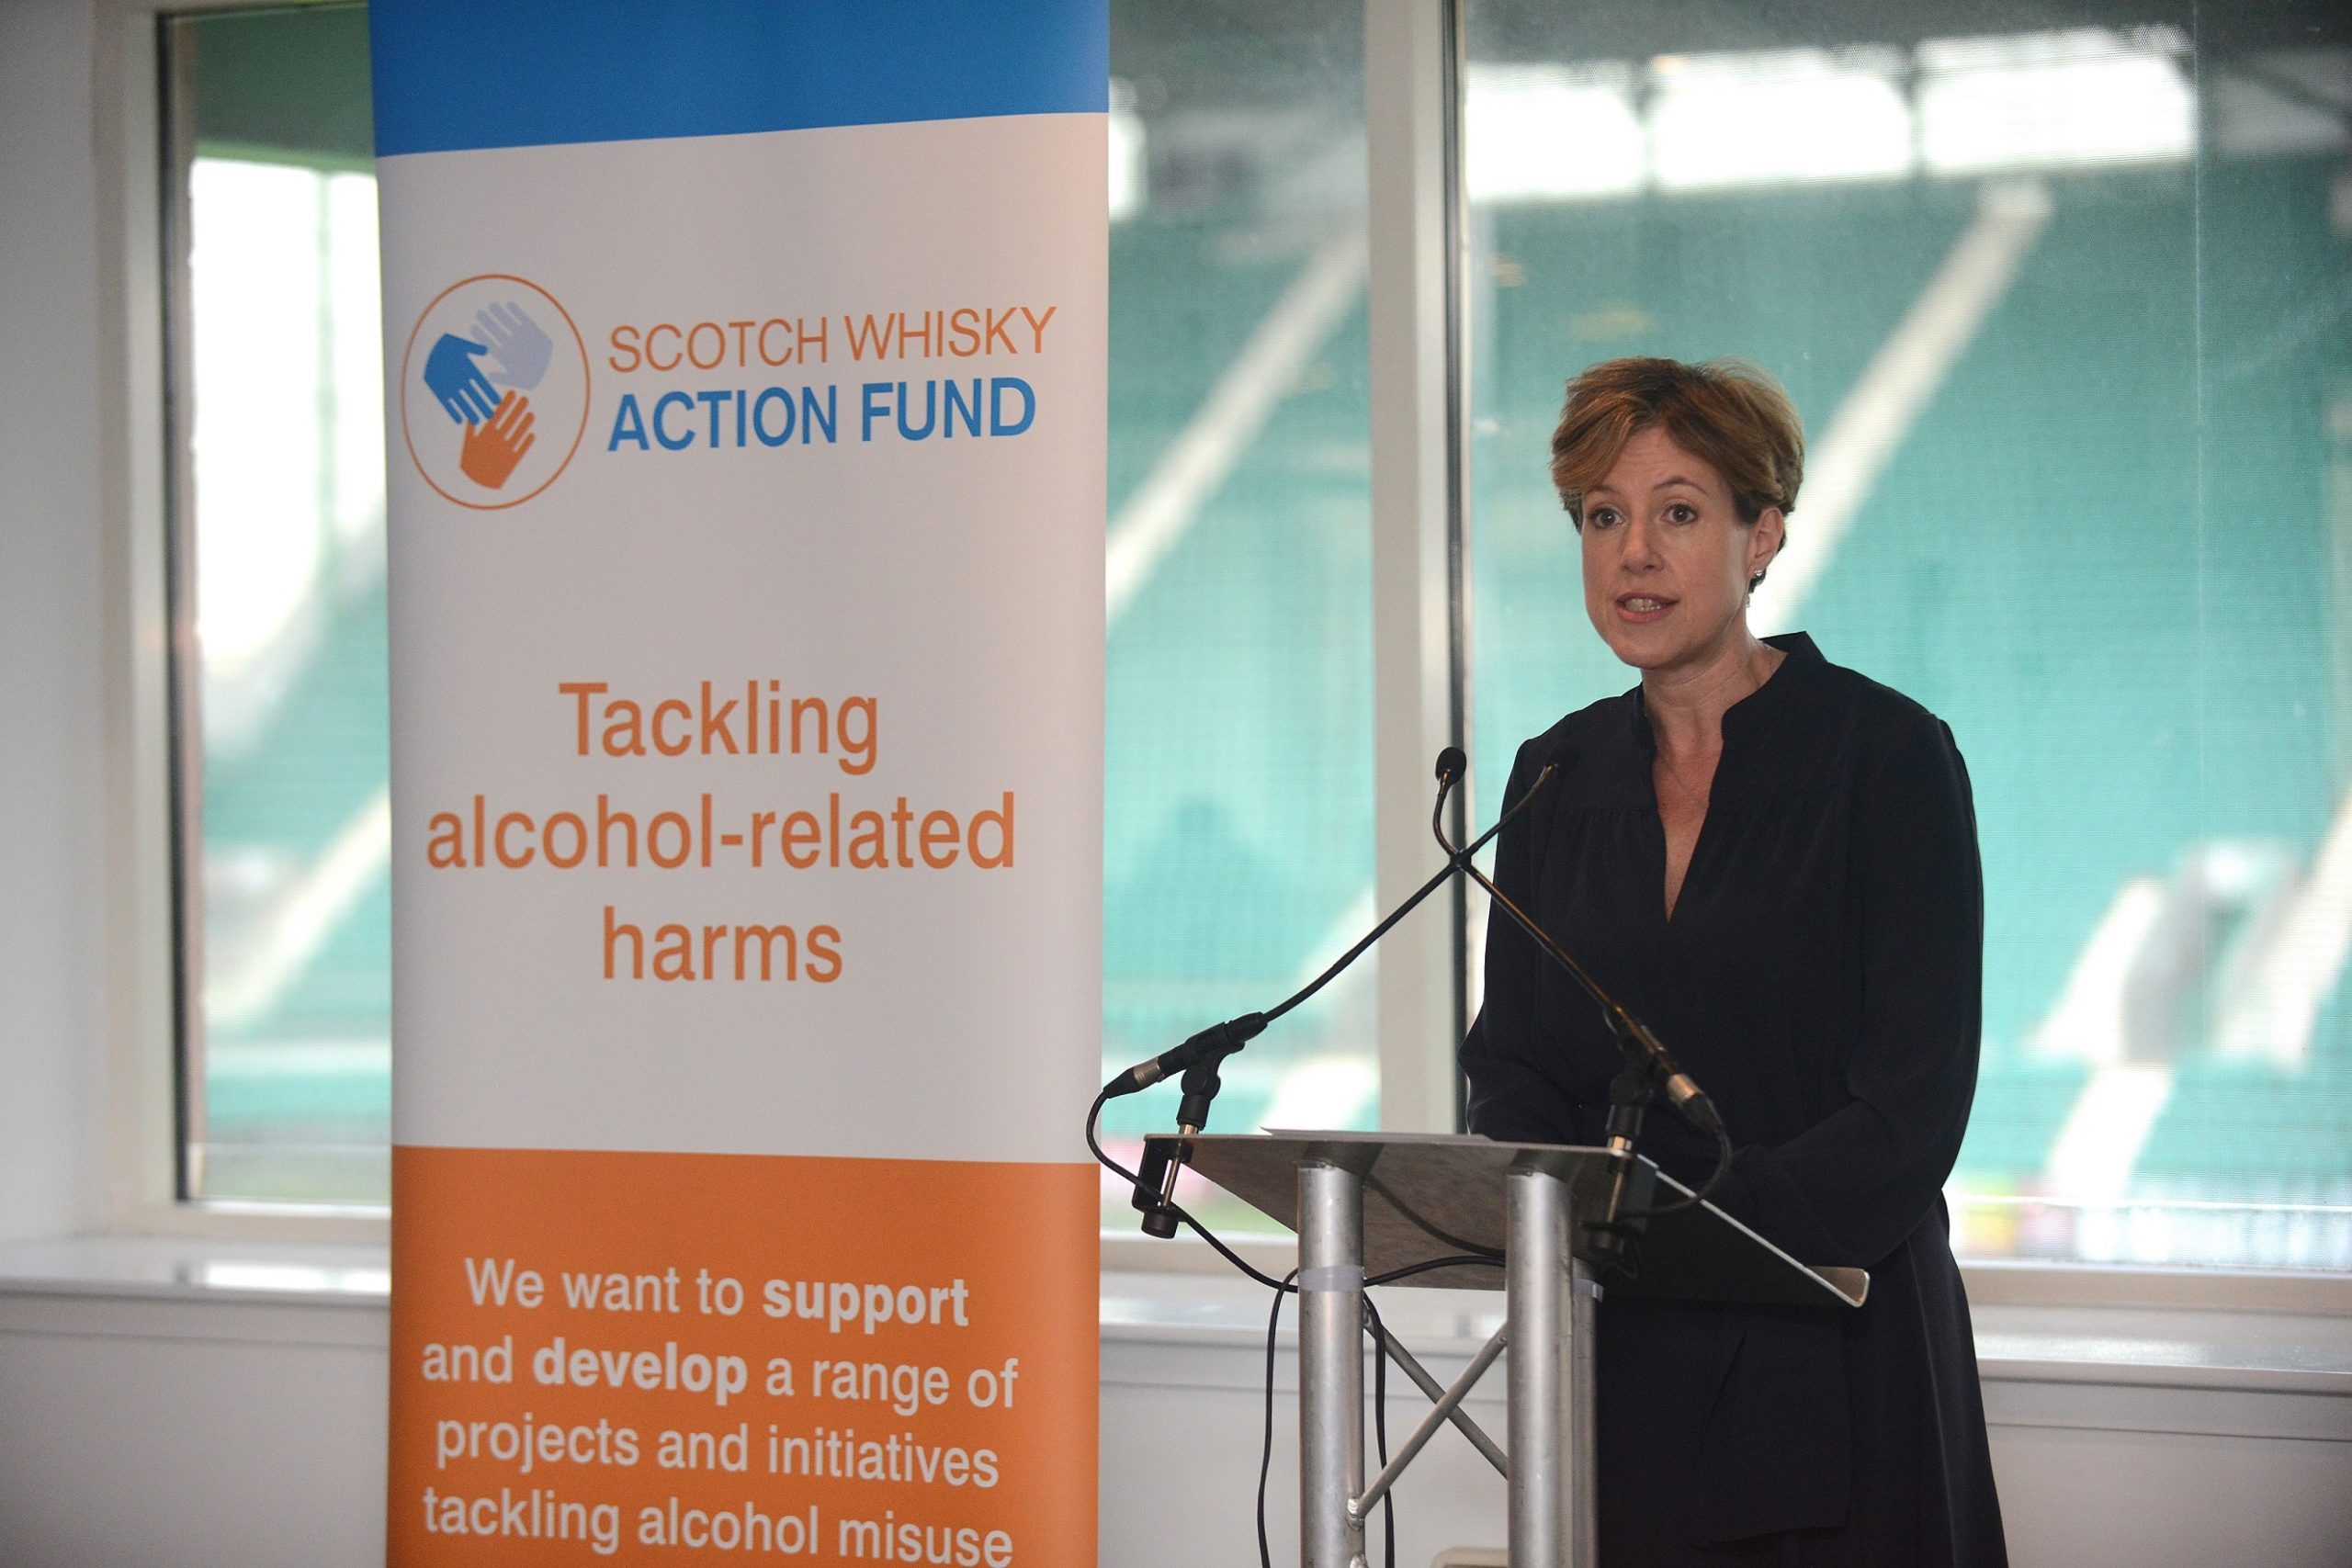 Karen Betts, chief executive of the Scotch Whisky Association, has praised the Addictions Counselling Inverness (ACI) project